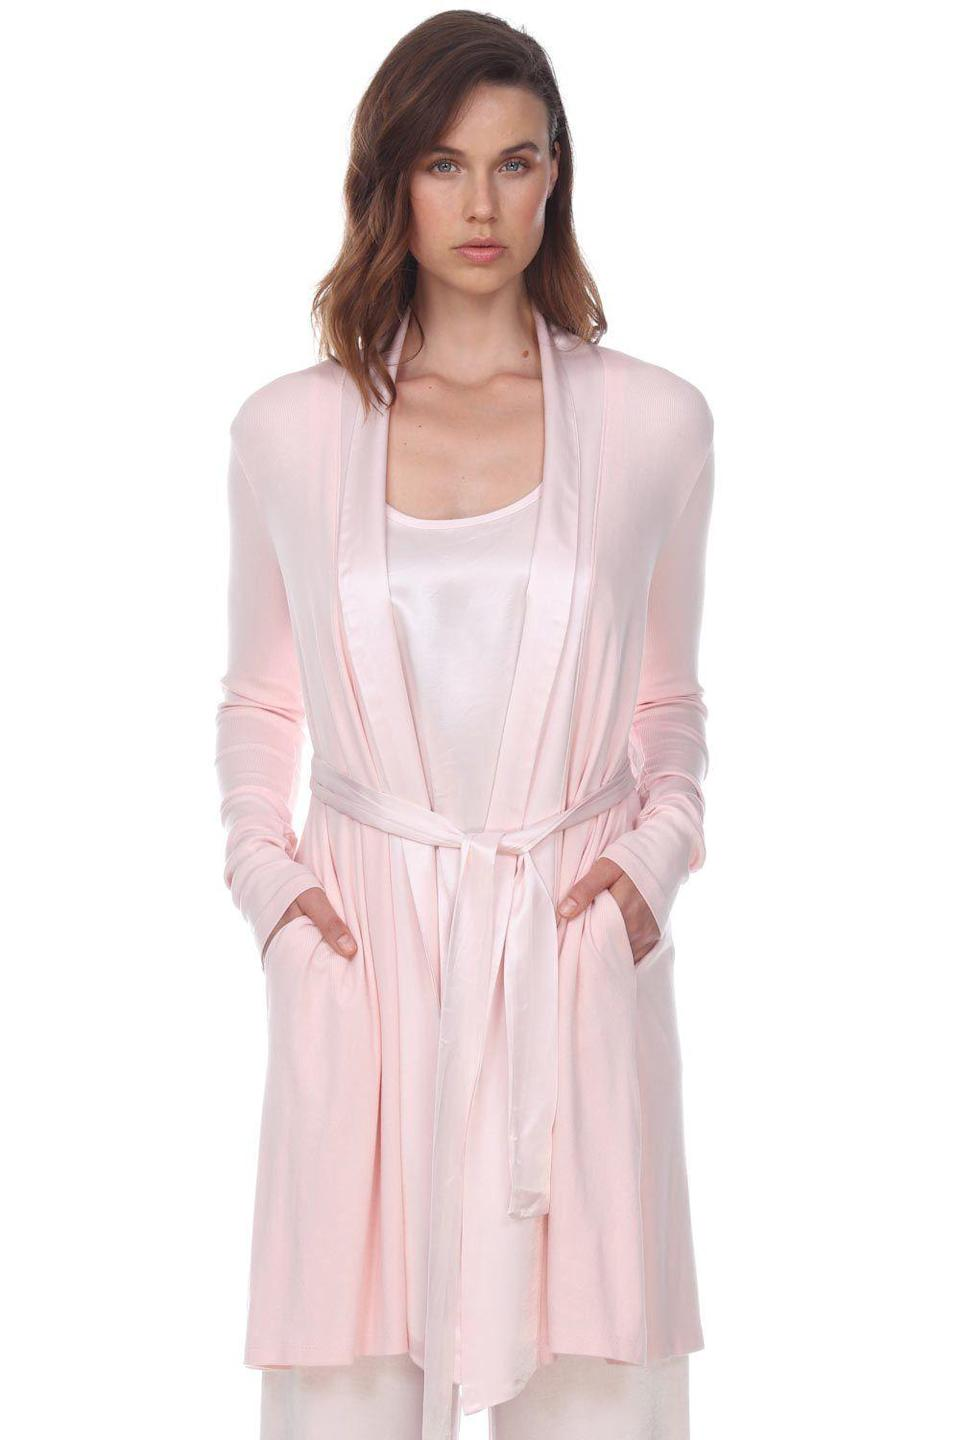 """<p>pjharlow.com</p><p><strong>$88.00</strong></p><p><a href=""""https://shop.pjharlow.com/collections/jackets-and-robes/products/elijah"""" rel=""""nofollow noopener"""" target=""""_blank"""" data-ylk=""""slk:Discover"""" class=""""link rapid-noclick-resp"""">Discover</a></p><p>Save 25% off site-wide this Friday on PJ Harlow's beloved jammies, pillowcases, and more. All you need to do is enter code """"BF25"""" at checkout. </p>"""